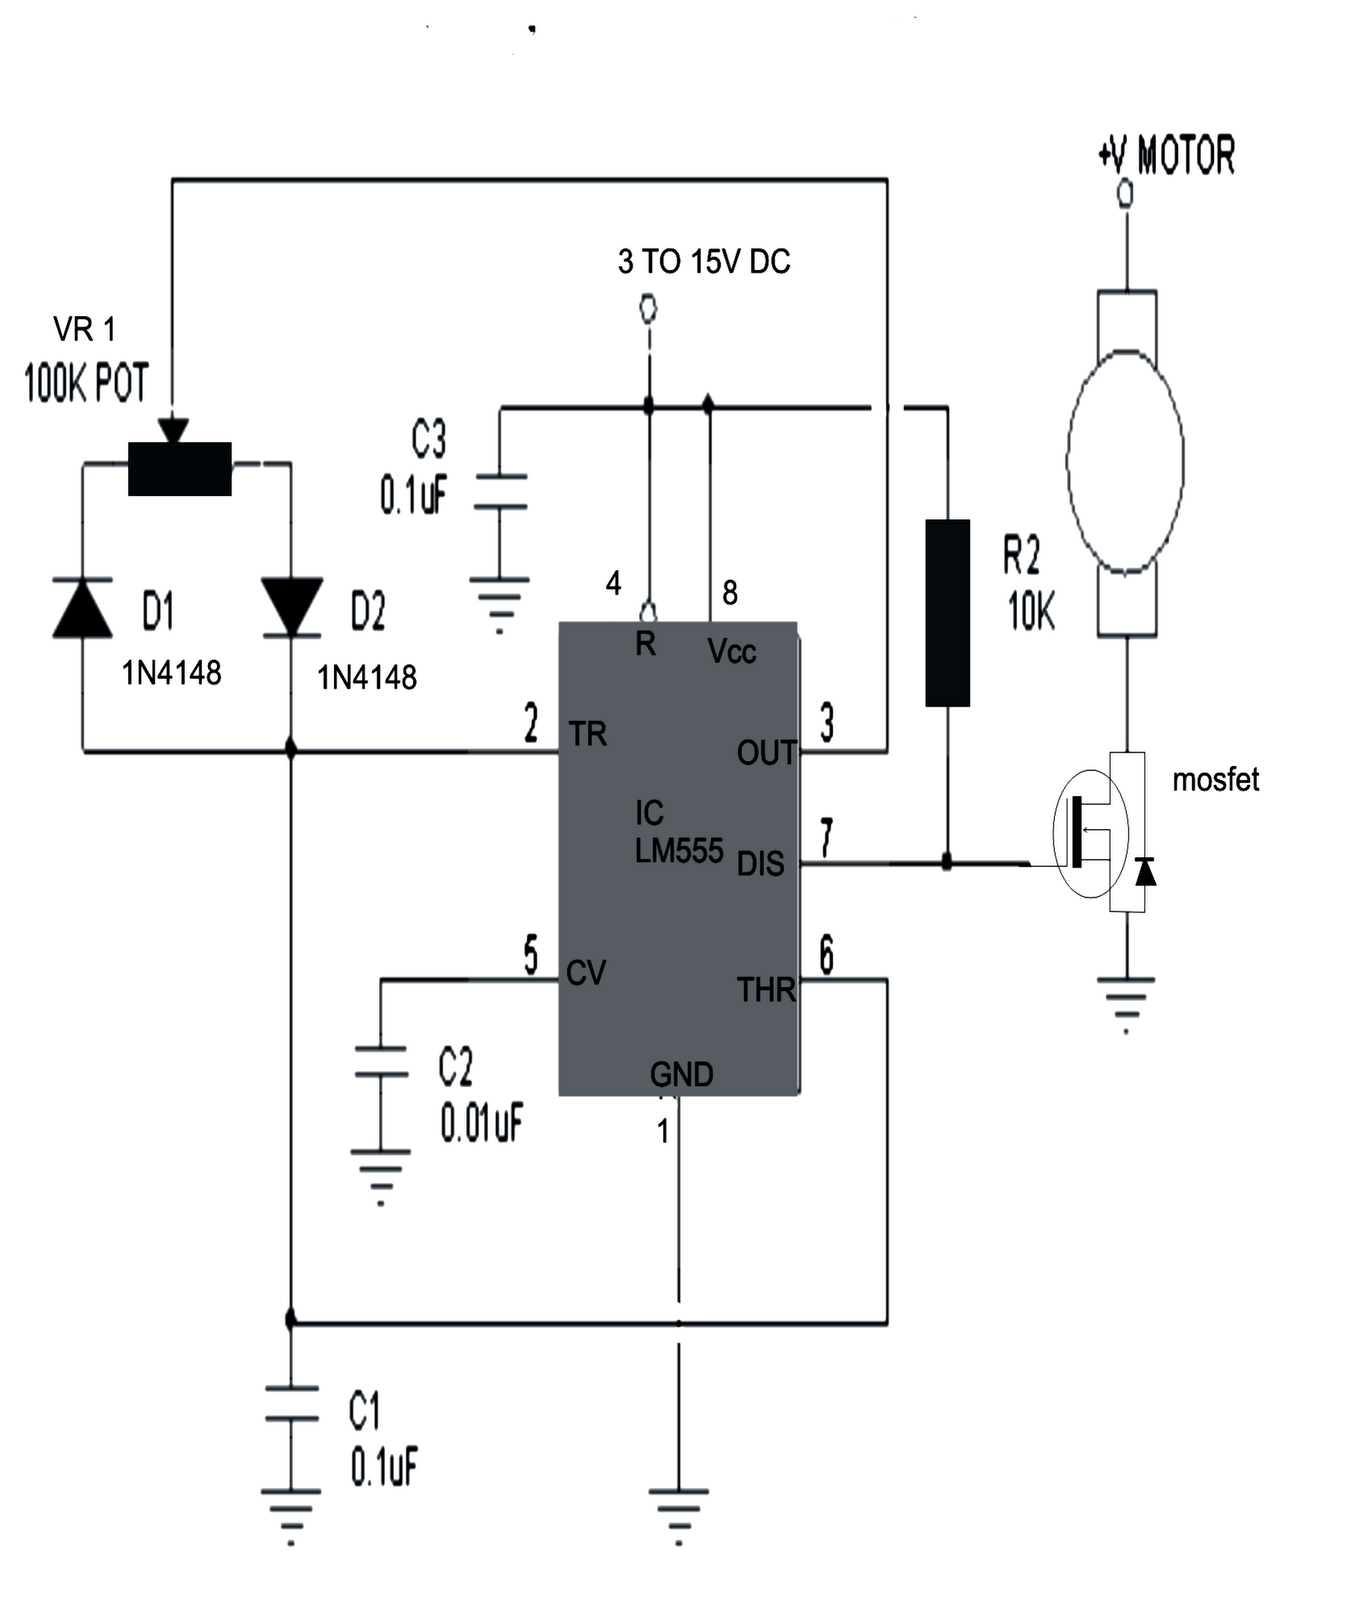 Simple Dc Motor Controller Circuit Pwm Based Torque Is Lost Electronics 220v Contel Digarm Diagram Images A